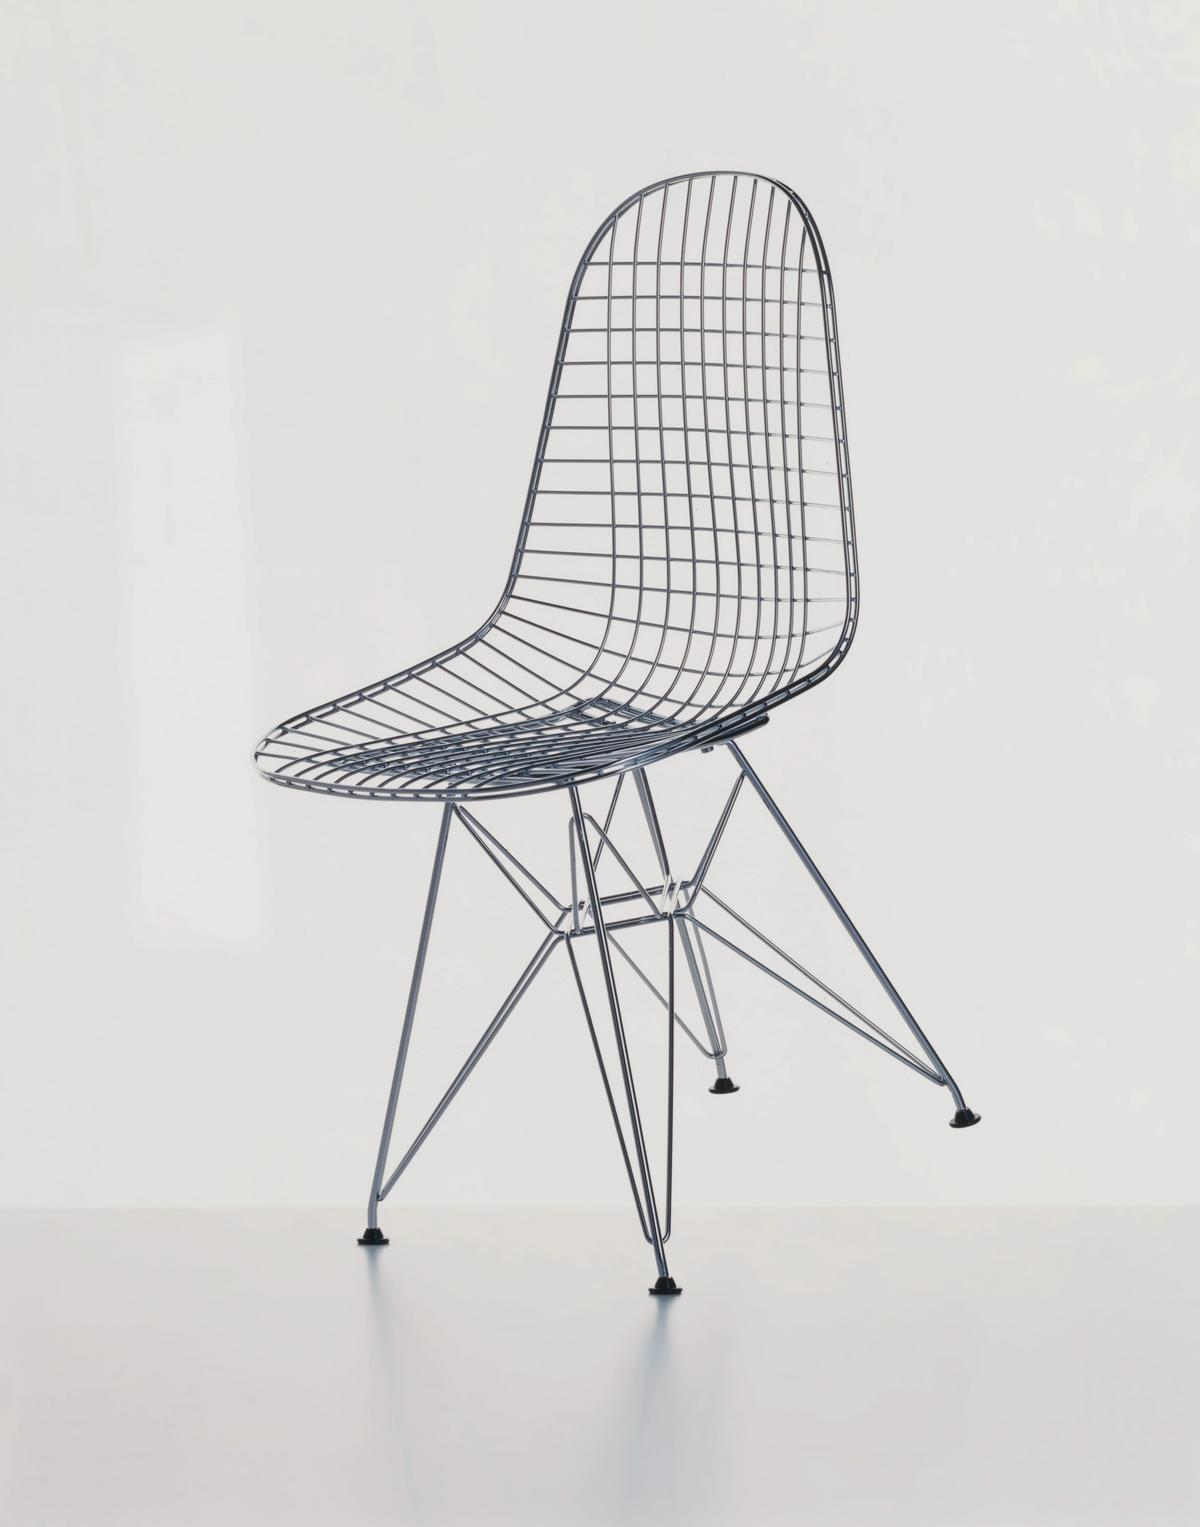 vitra dkr wire chair von charles ray eames 1951. Black Bedroom Furniture Sets. Home Design Ideas